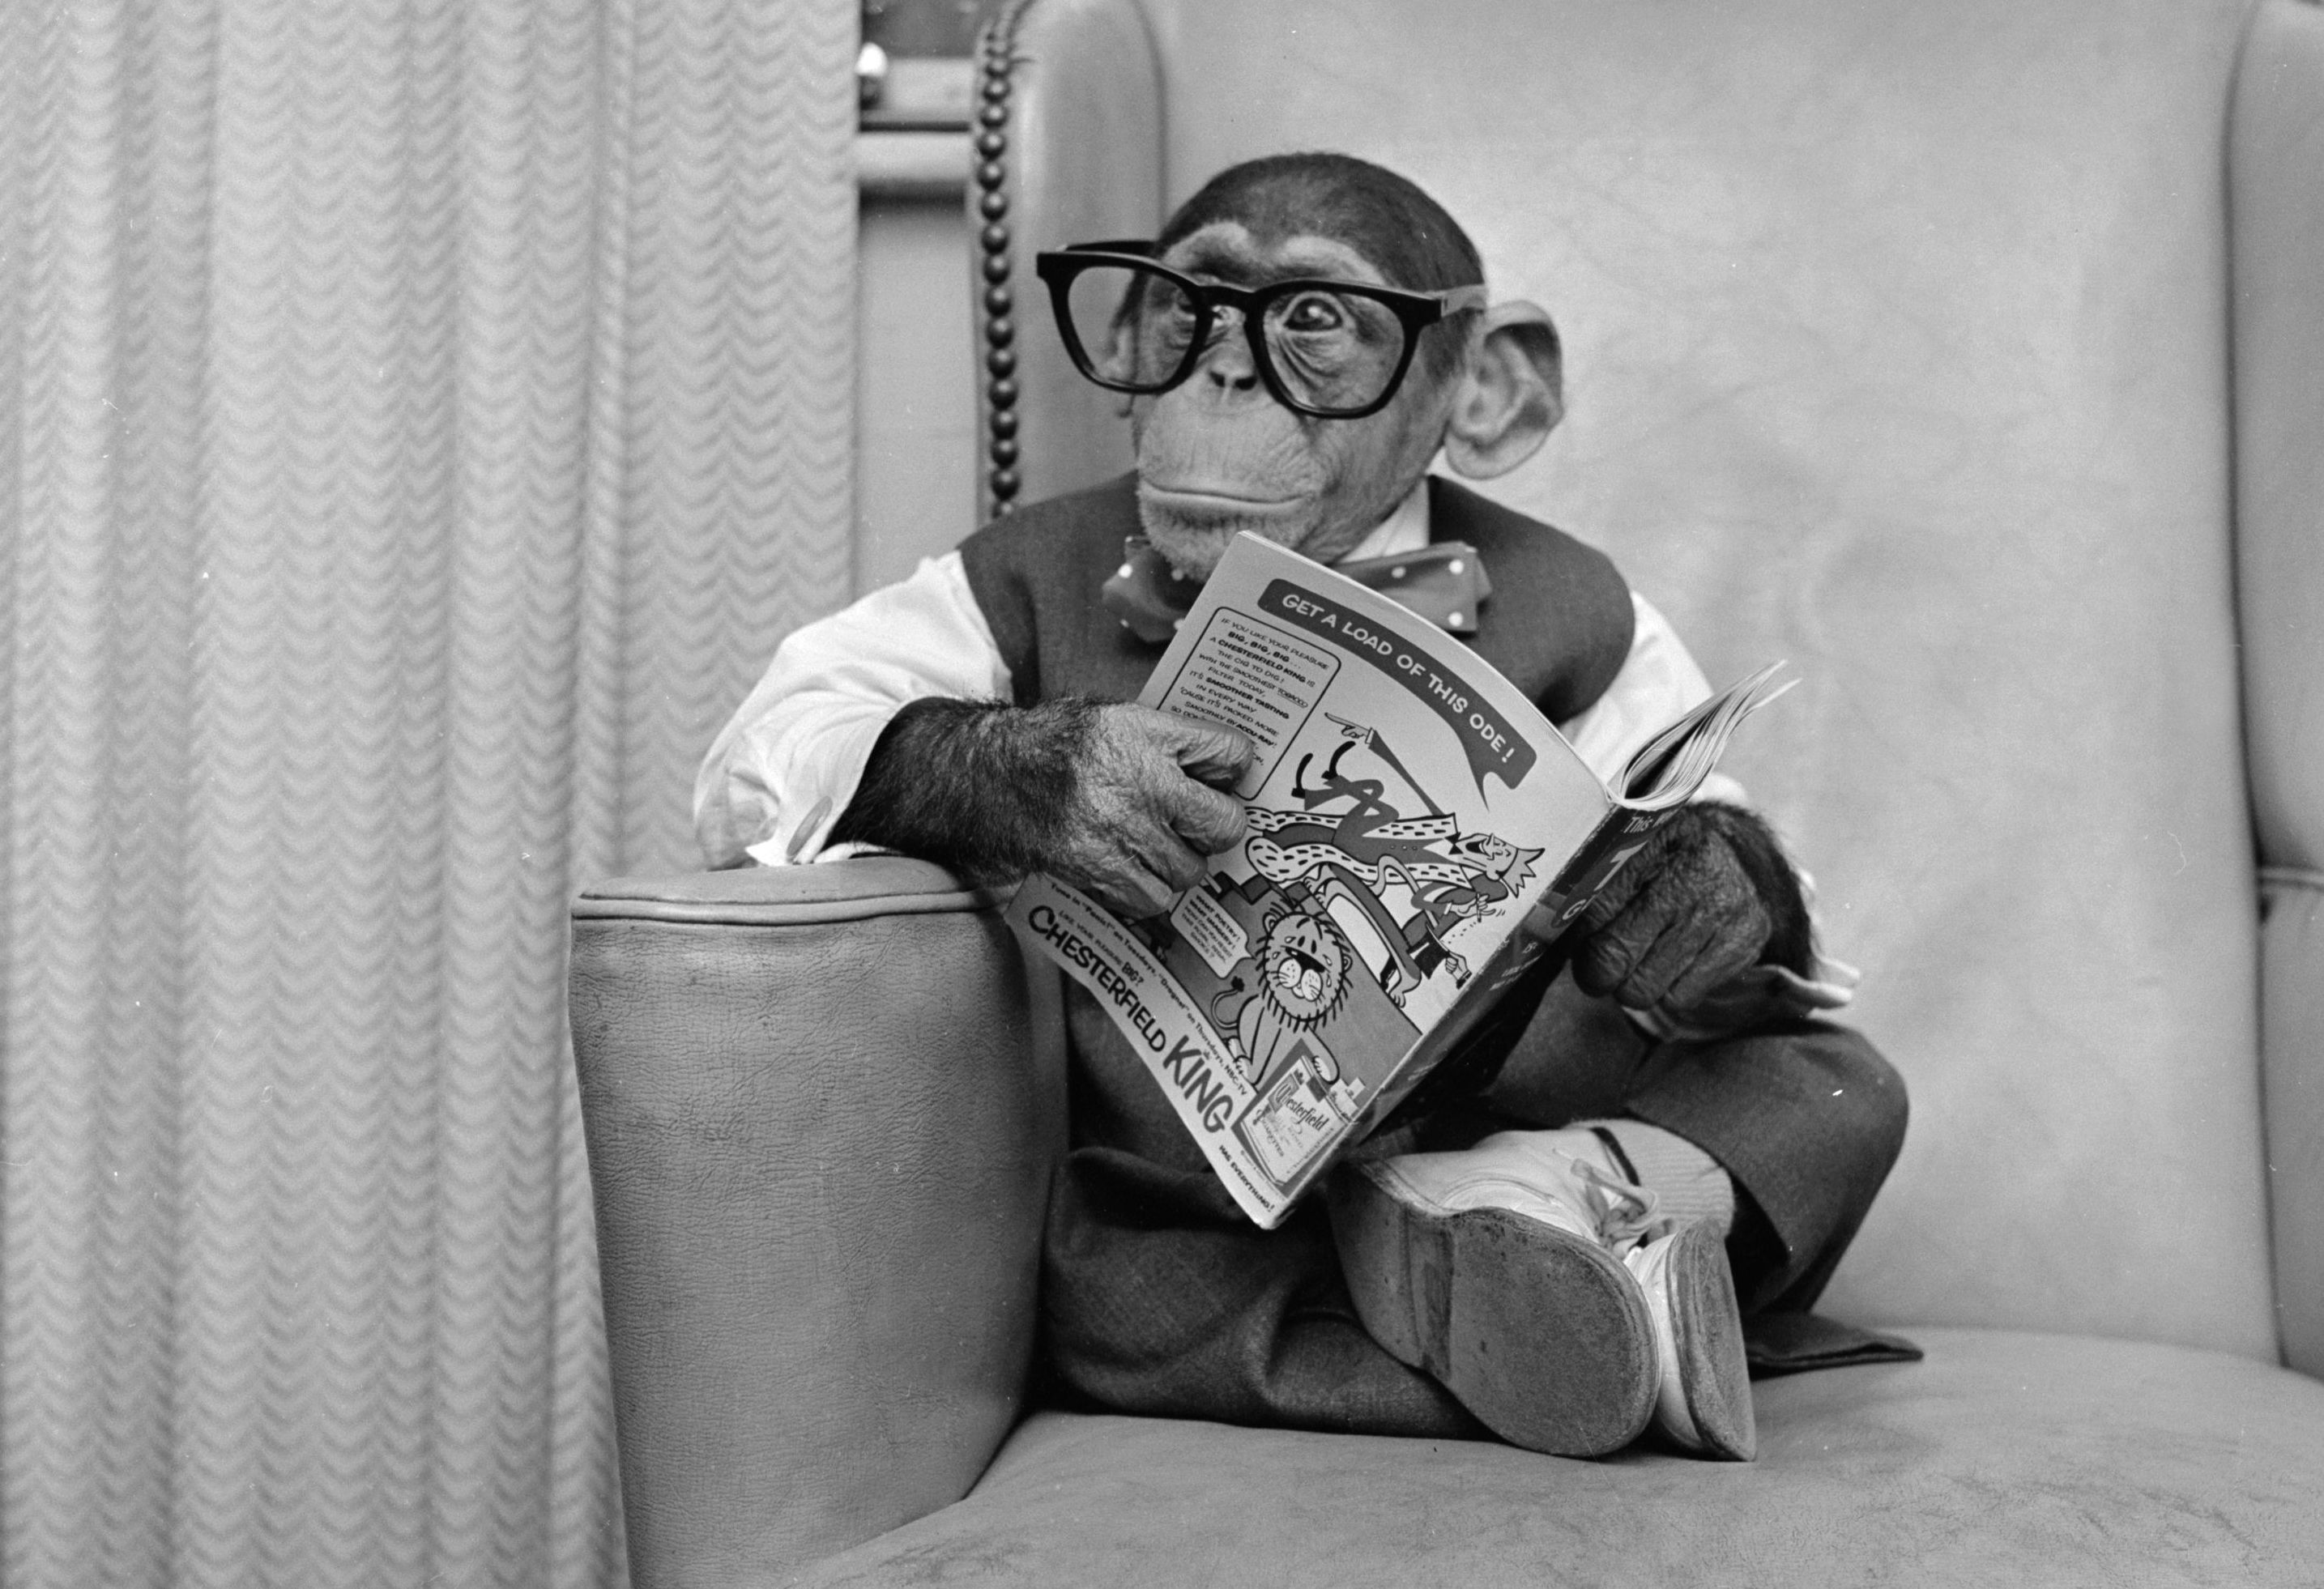 Chimp reading